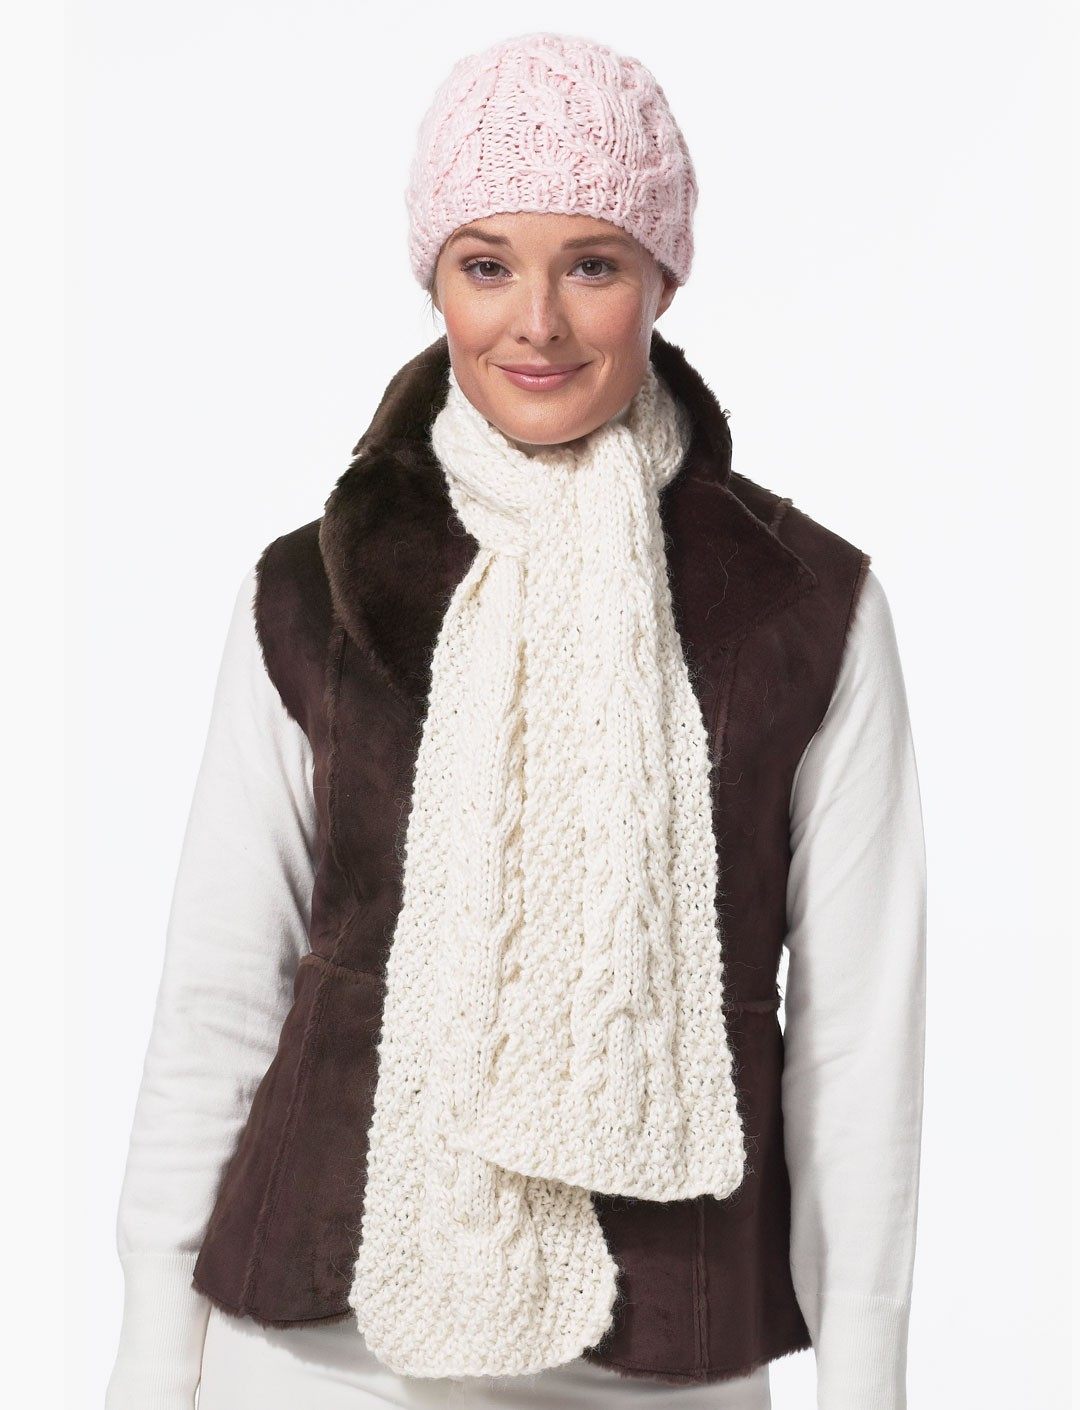 Shop jelly555.ml for fashionable scarves and hats for women, men, and kids in a variety of great styles for only $1 each.